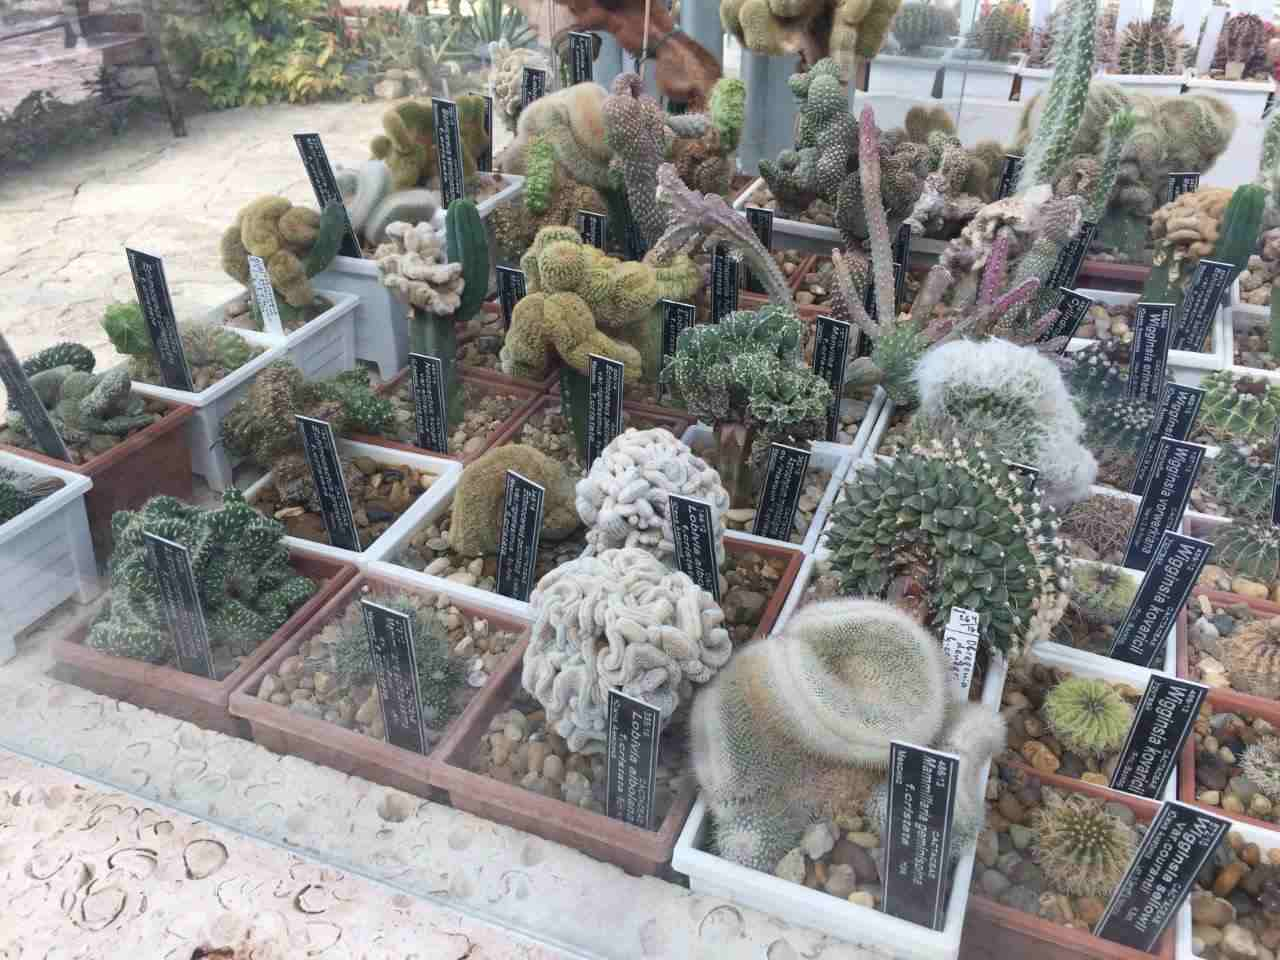 A collection of small cacti in the glasshouse